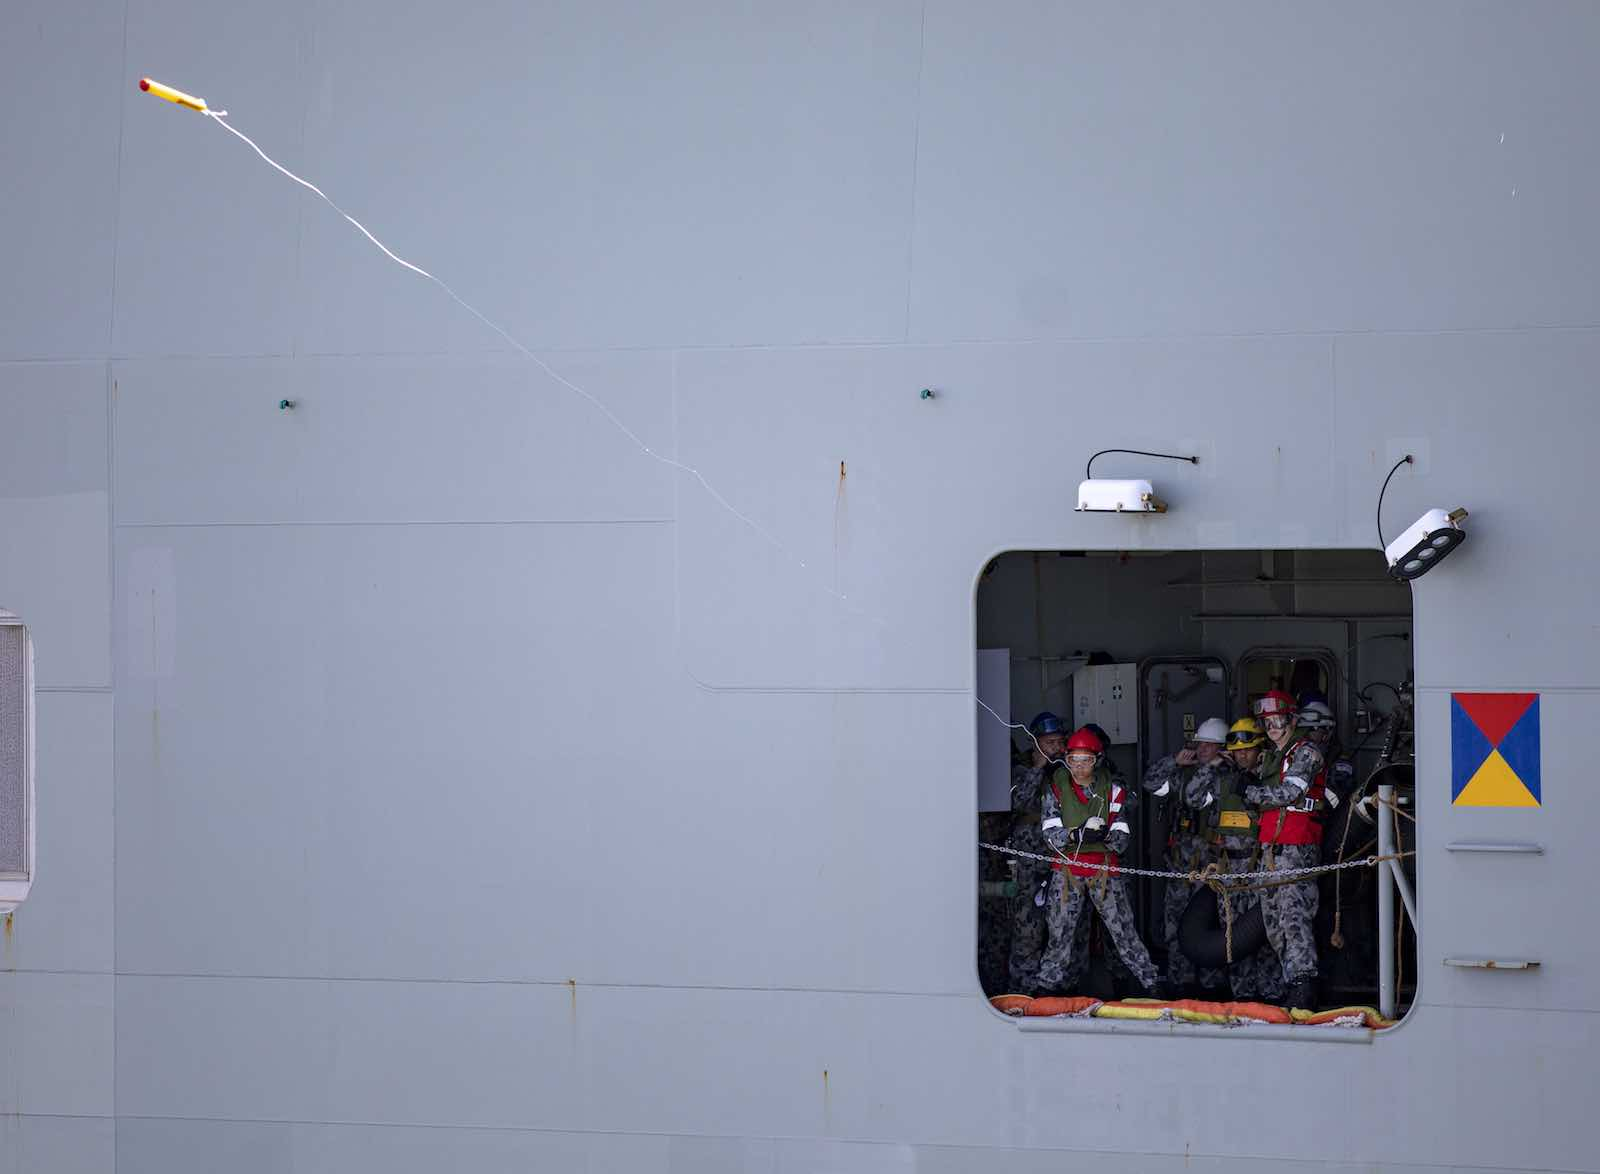 HMAS Canberra fire the lines for replenishment from HMAS Success as part of Indo-Pacific Endeavour 2019 (Department of Defence)